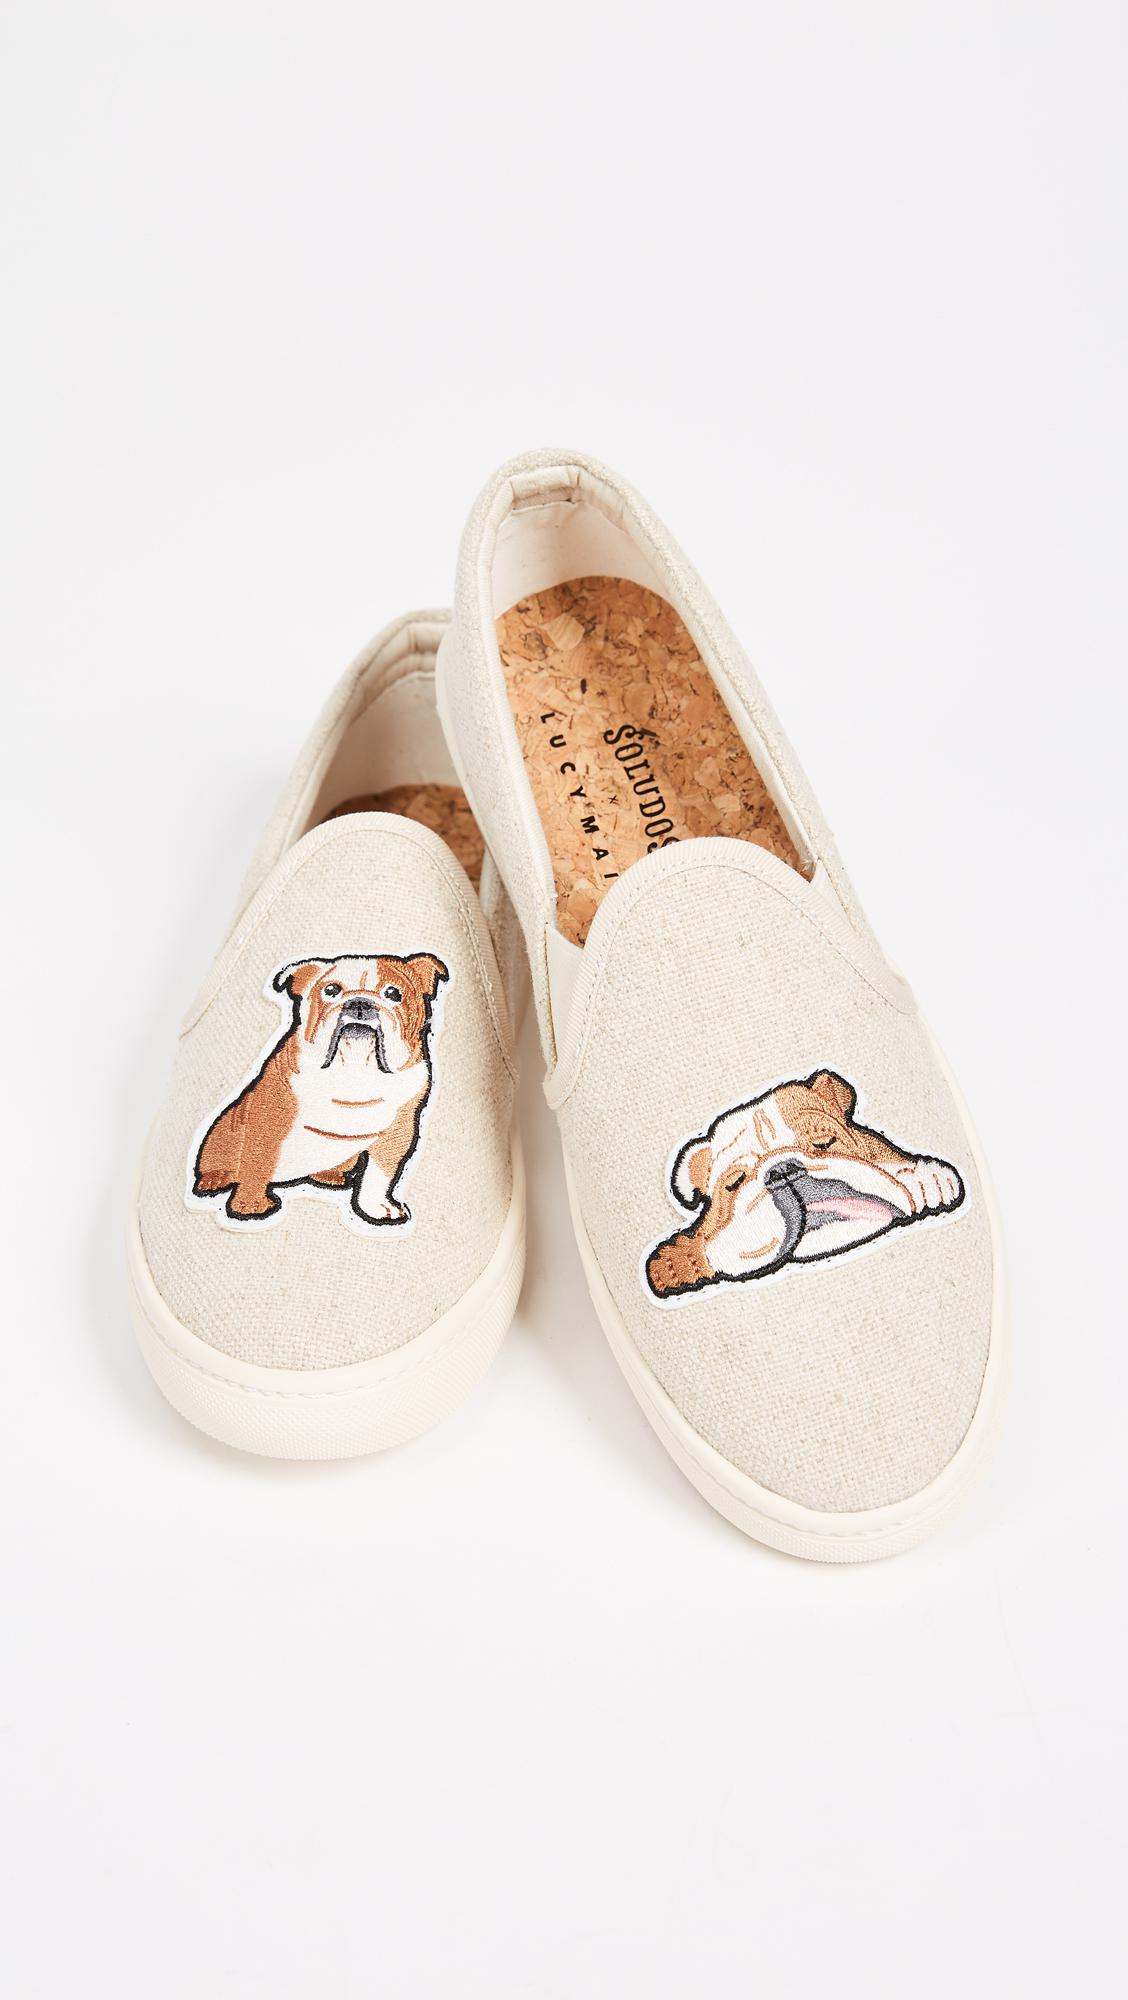 Soludos Canvas Bulldog Slip On Sneakers in Sand (Natural)